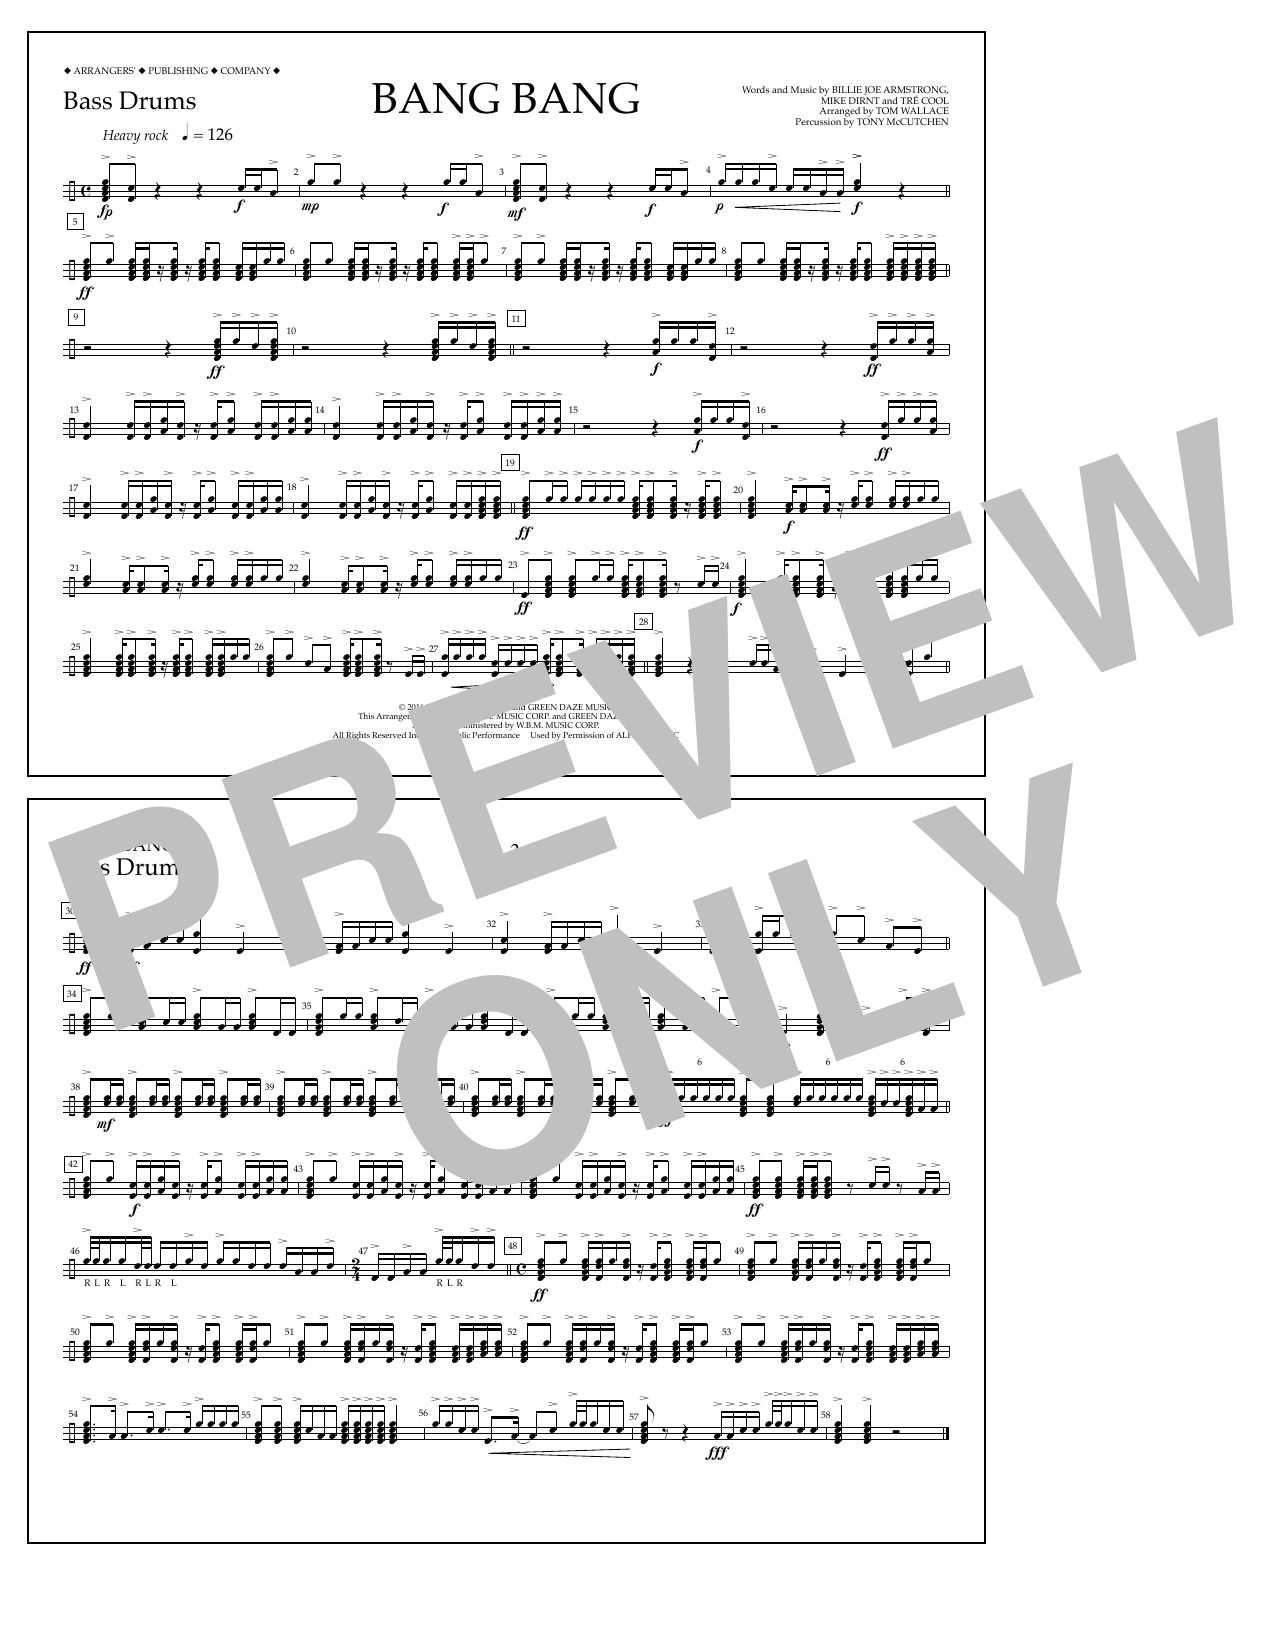 Bang Bang - Bass Drums Sheet Music